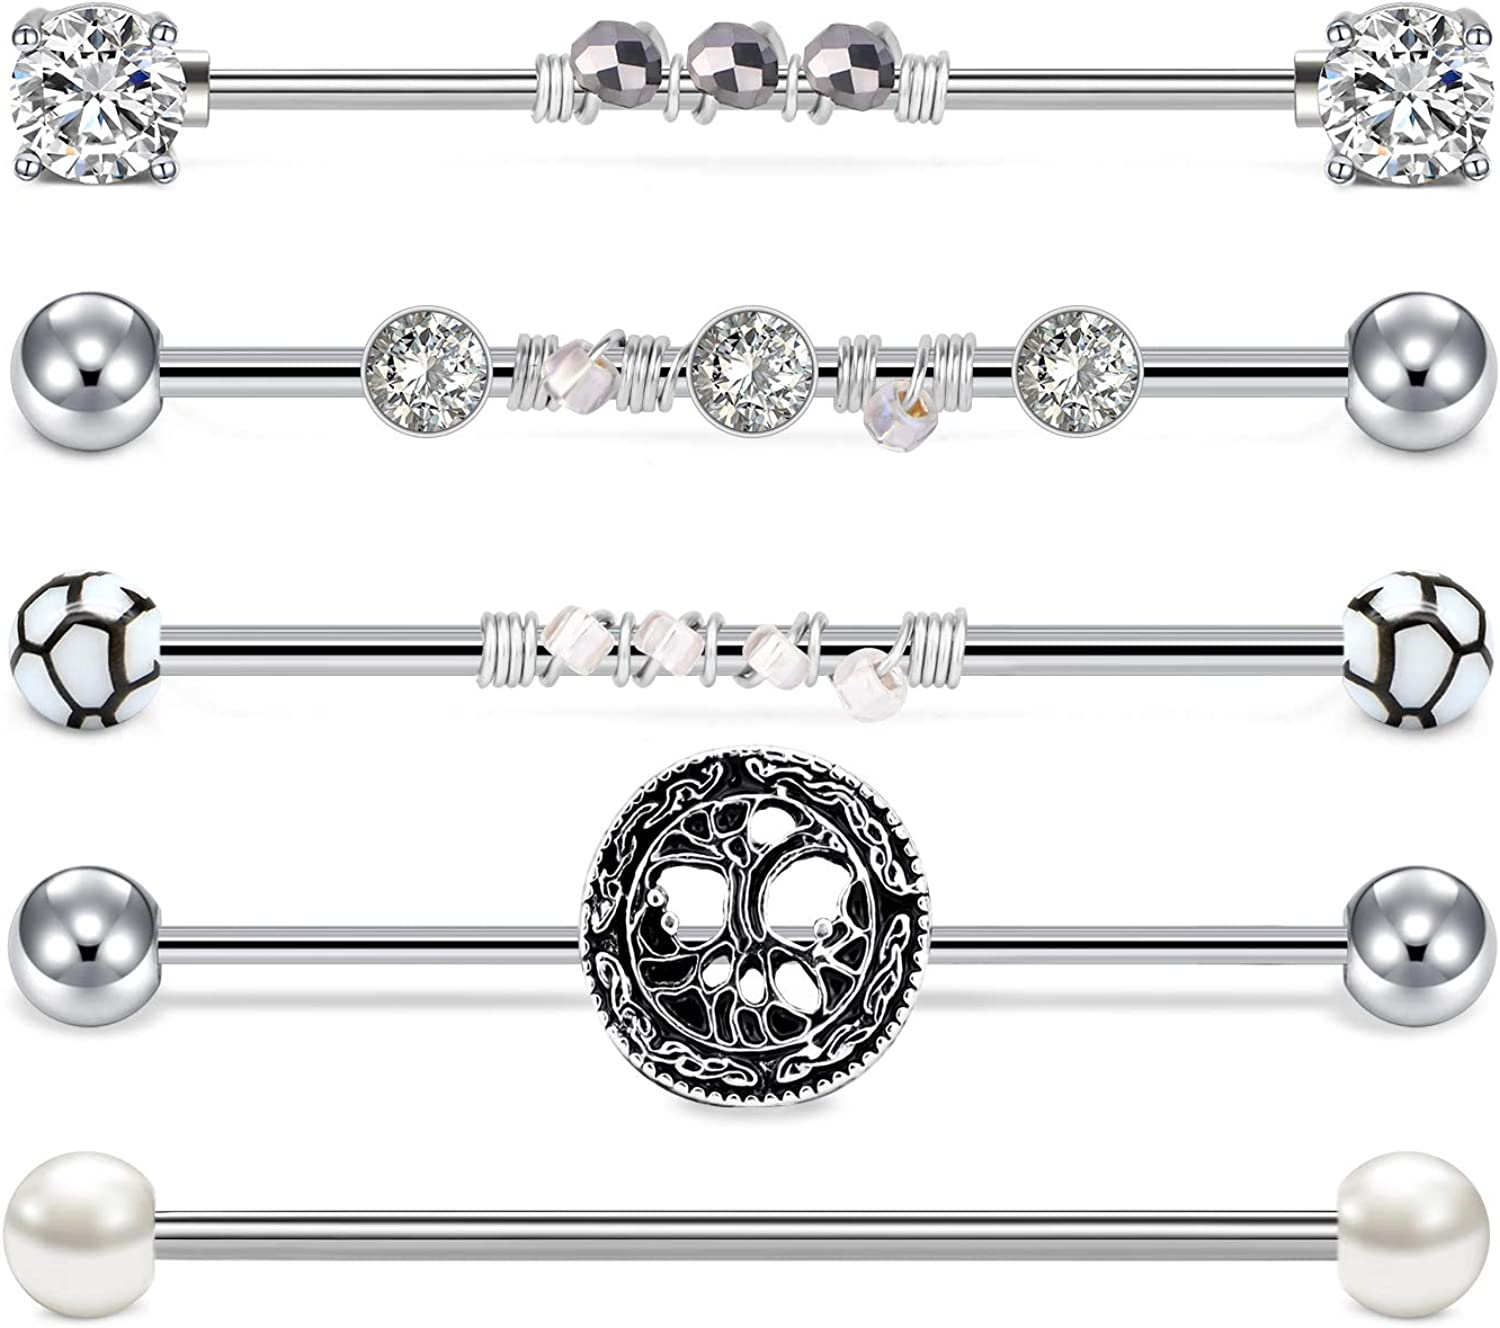 JFORYOU 5pcs 14G Stainless Steel Industrial Barbell Earrings Bead Winding Style Vintage Style CZ Cartilage Body Piercing Jewelry 38mm 1&1/2 Inch Industrial Piercing Bar